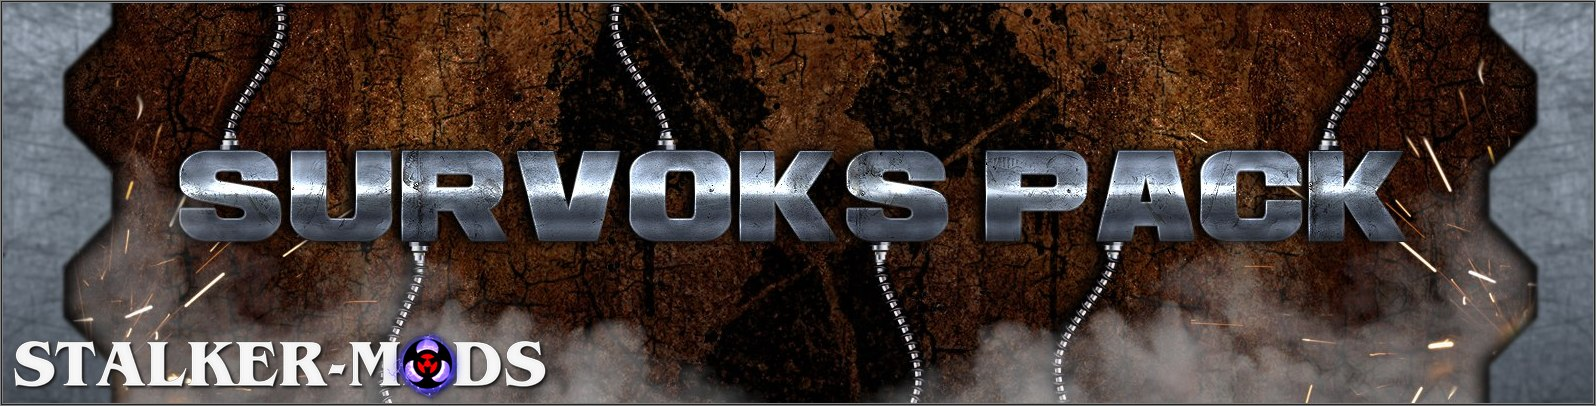 Survoks Pack v3.0